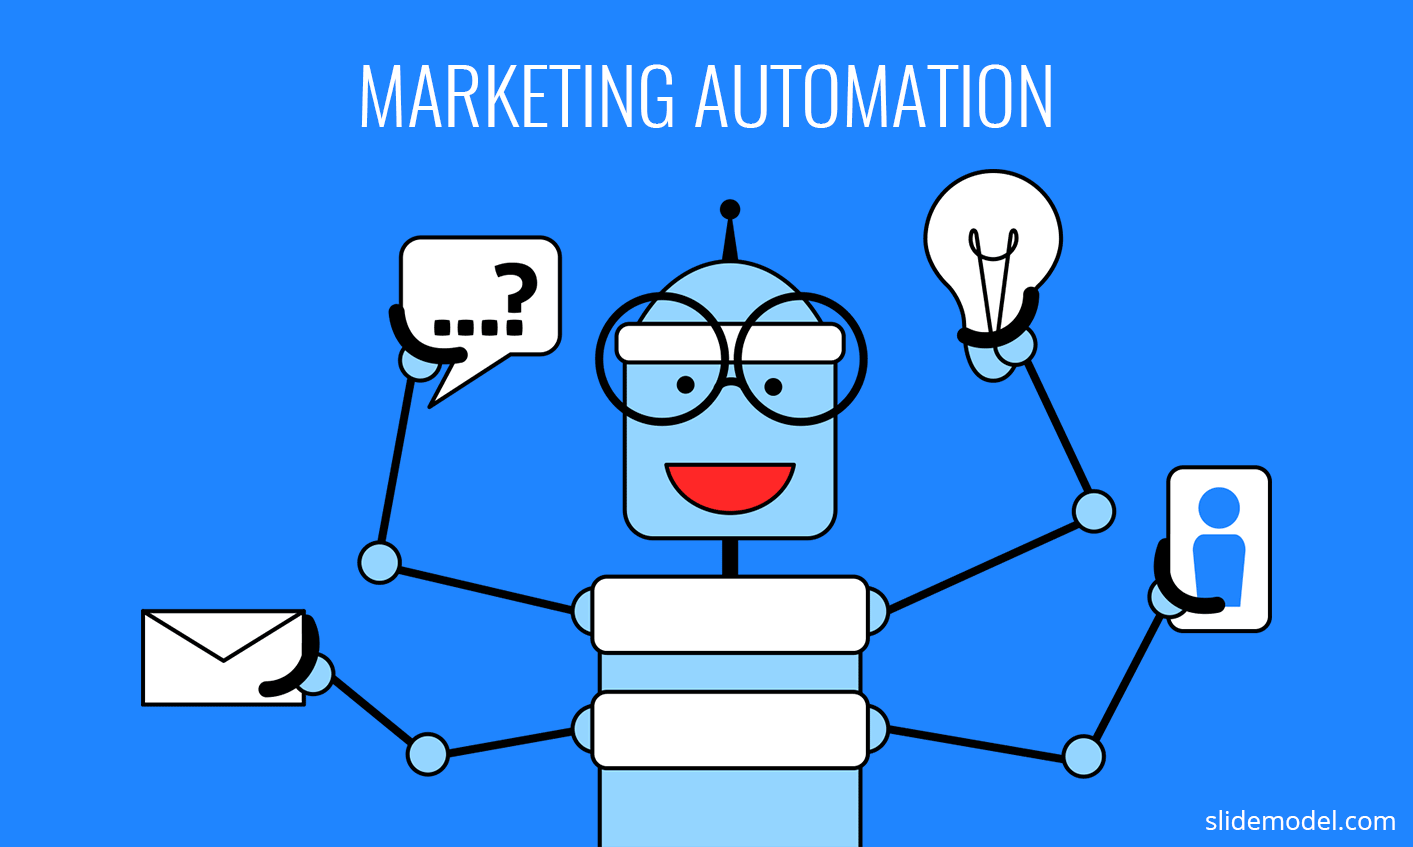 A robot design created as a metaphor of Marketing Automation with blue background